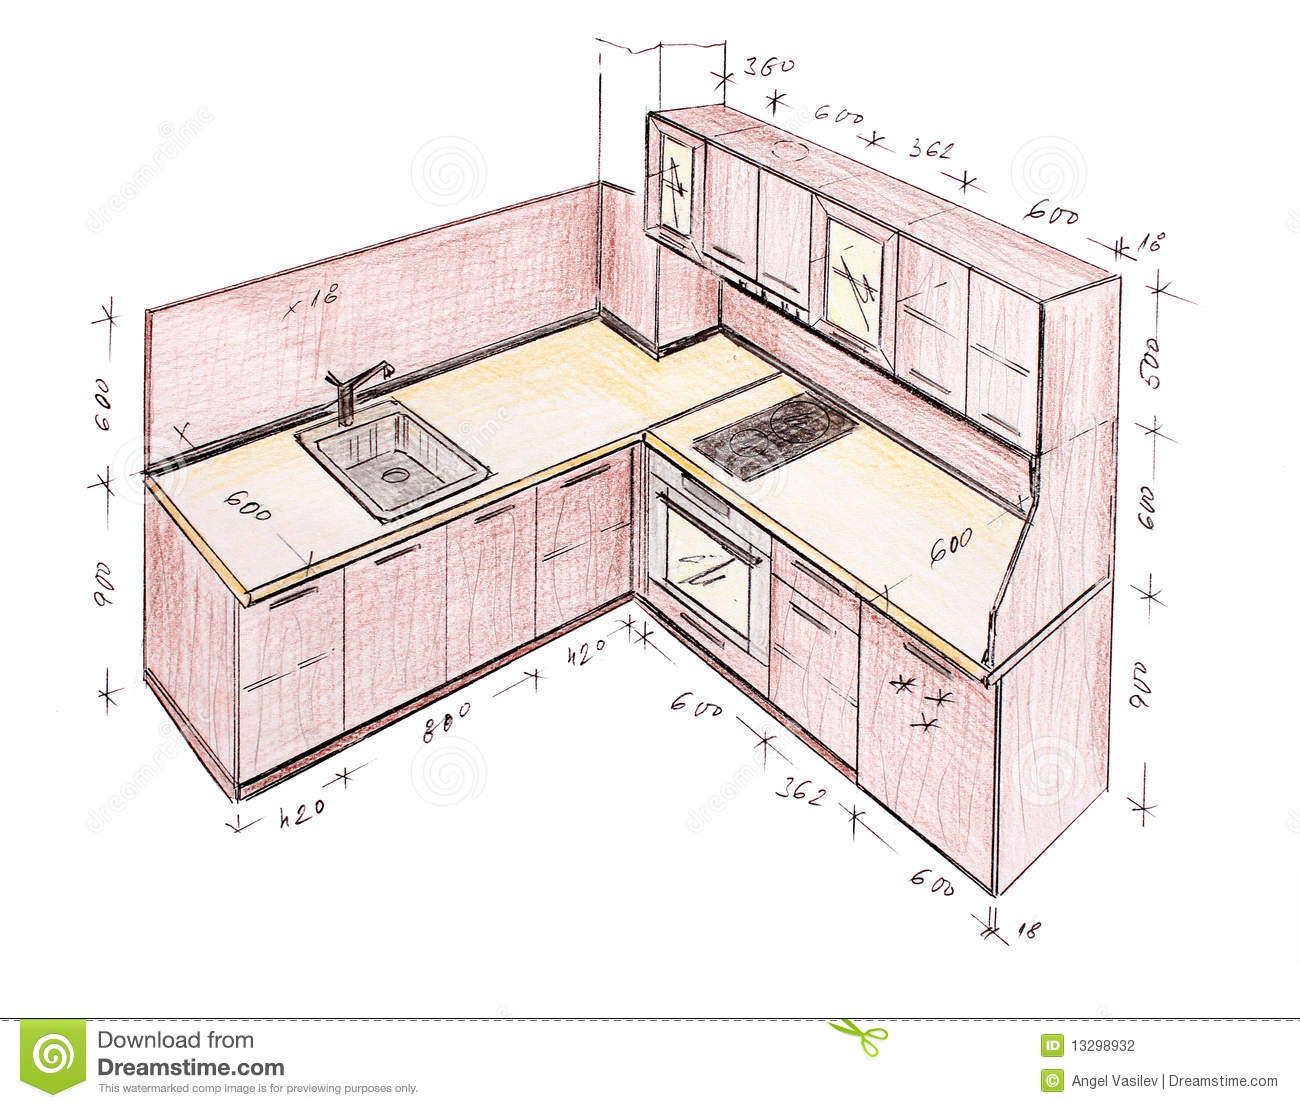 design drawing drawn freehand furniture hand illustration interior